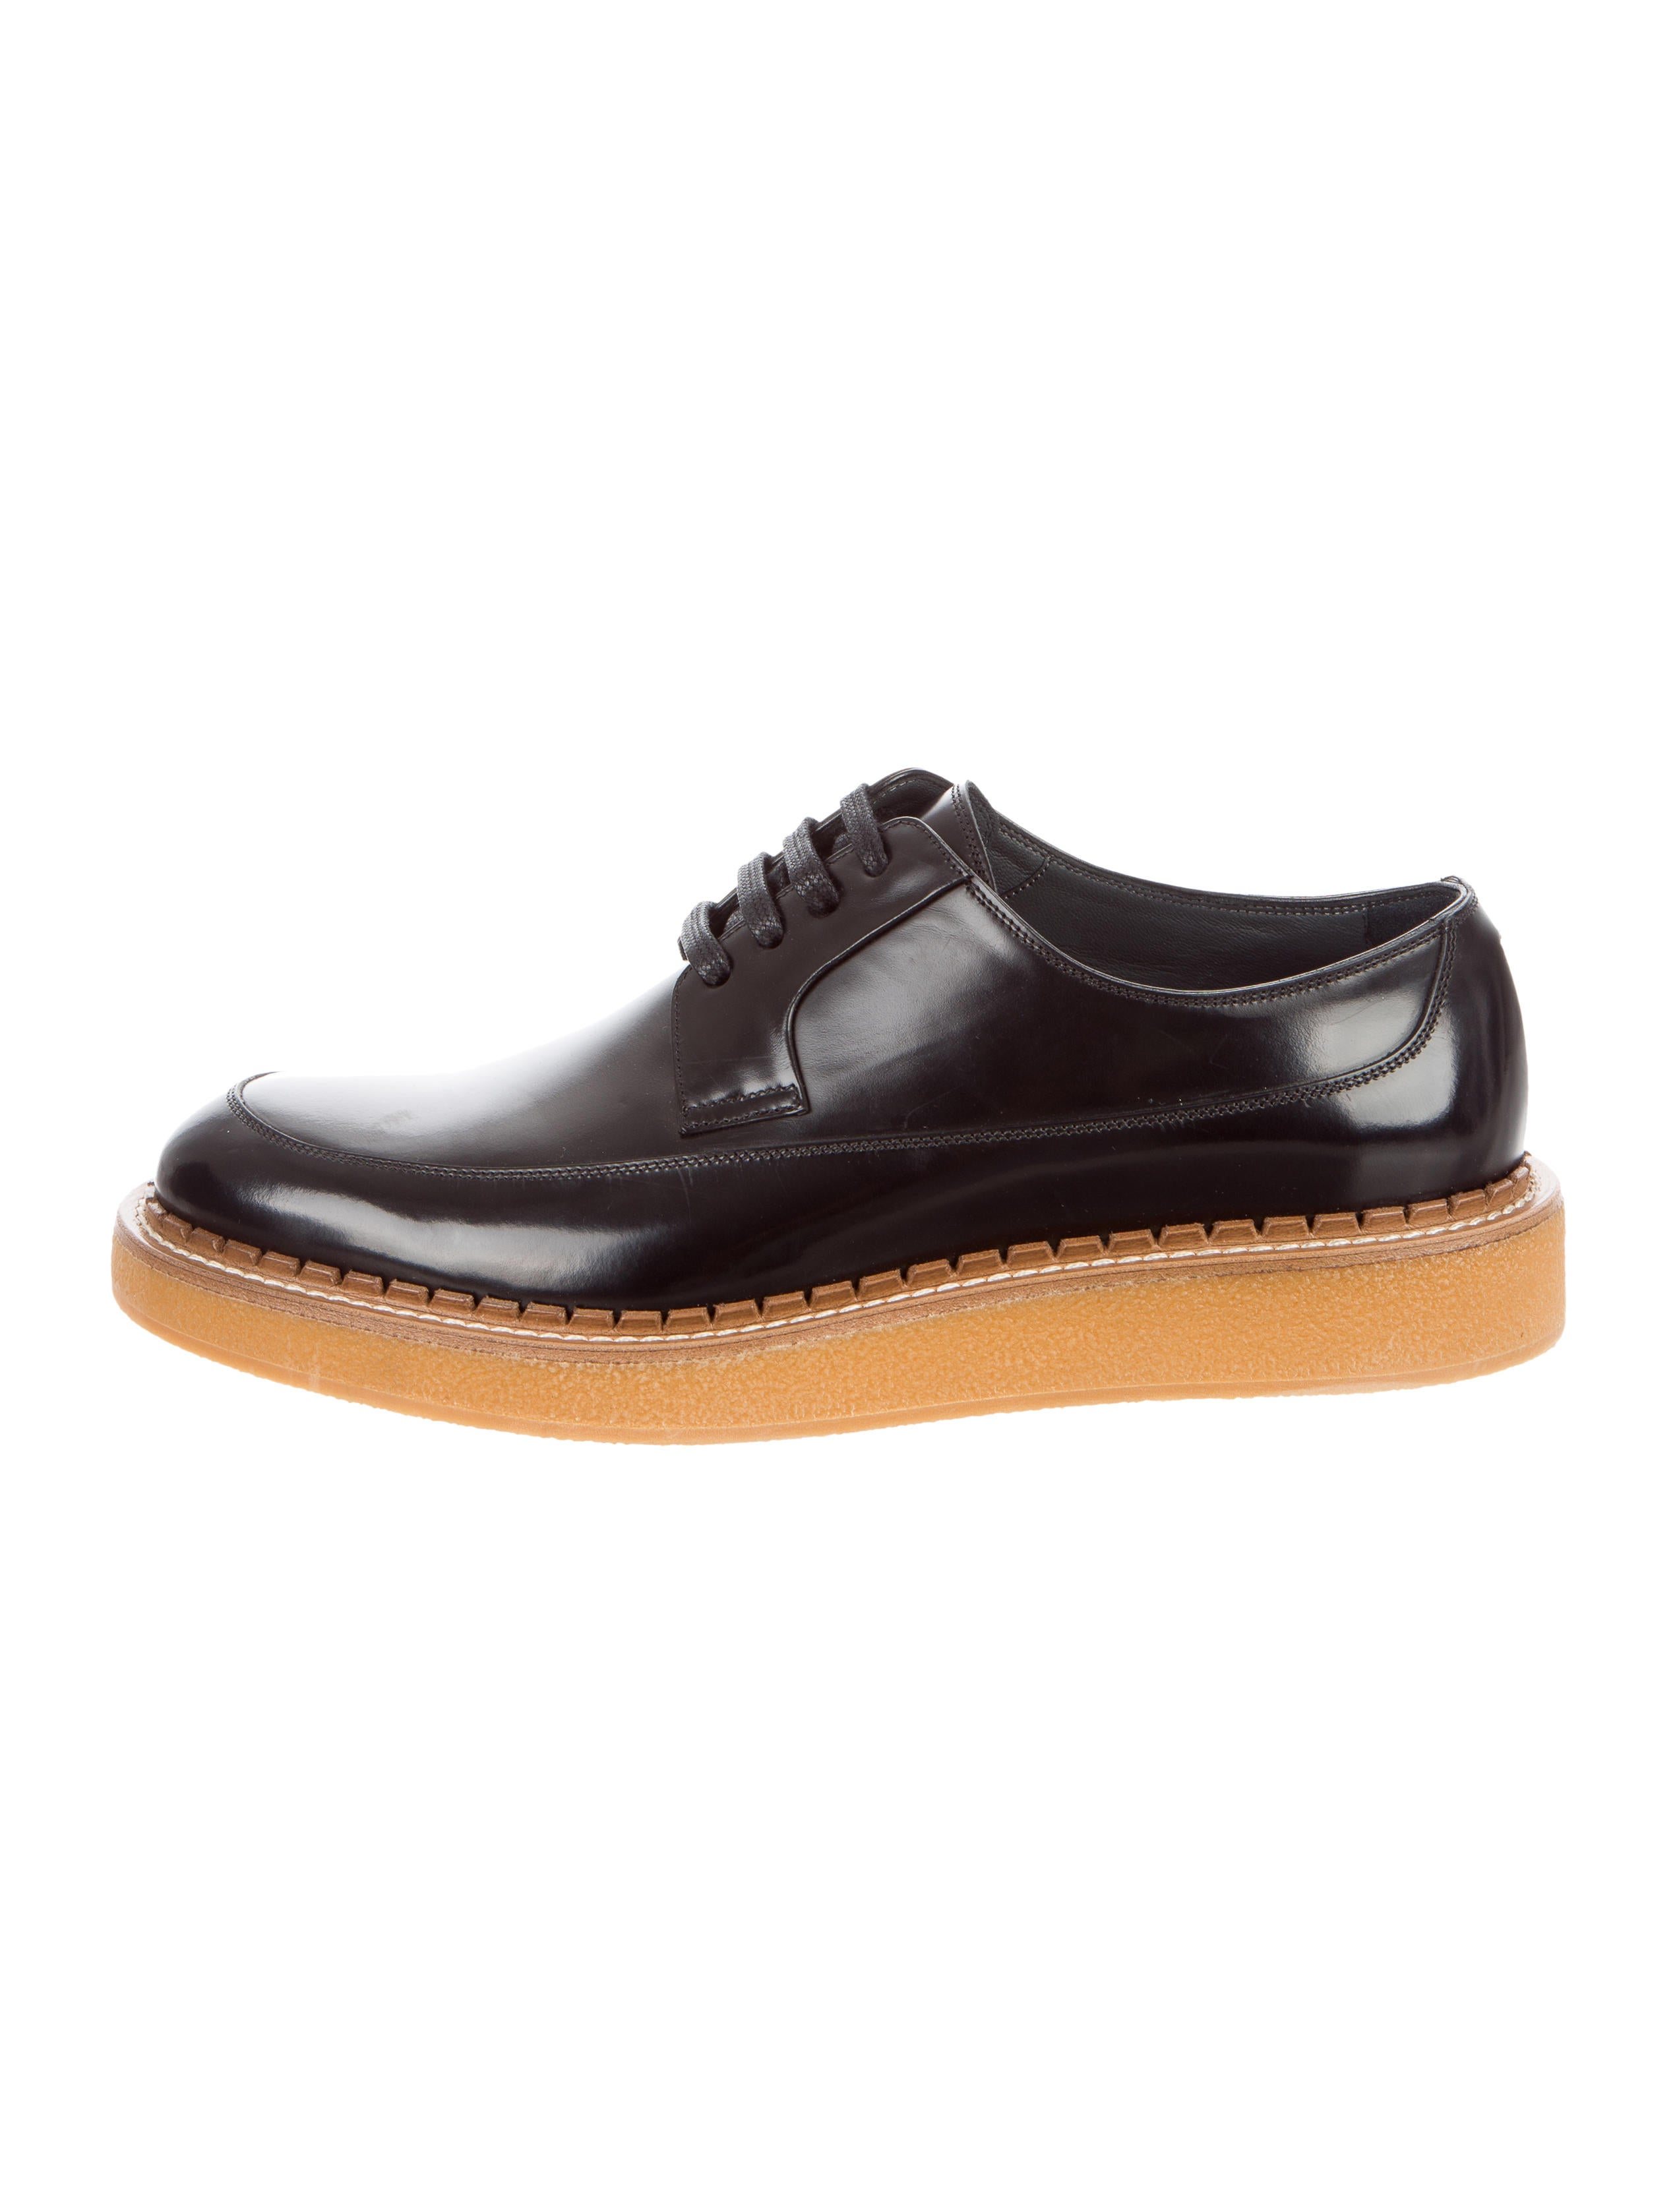 Dior Black Leather Derby Shoes